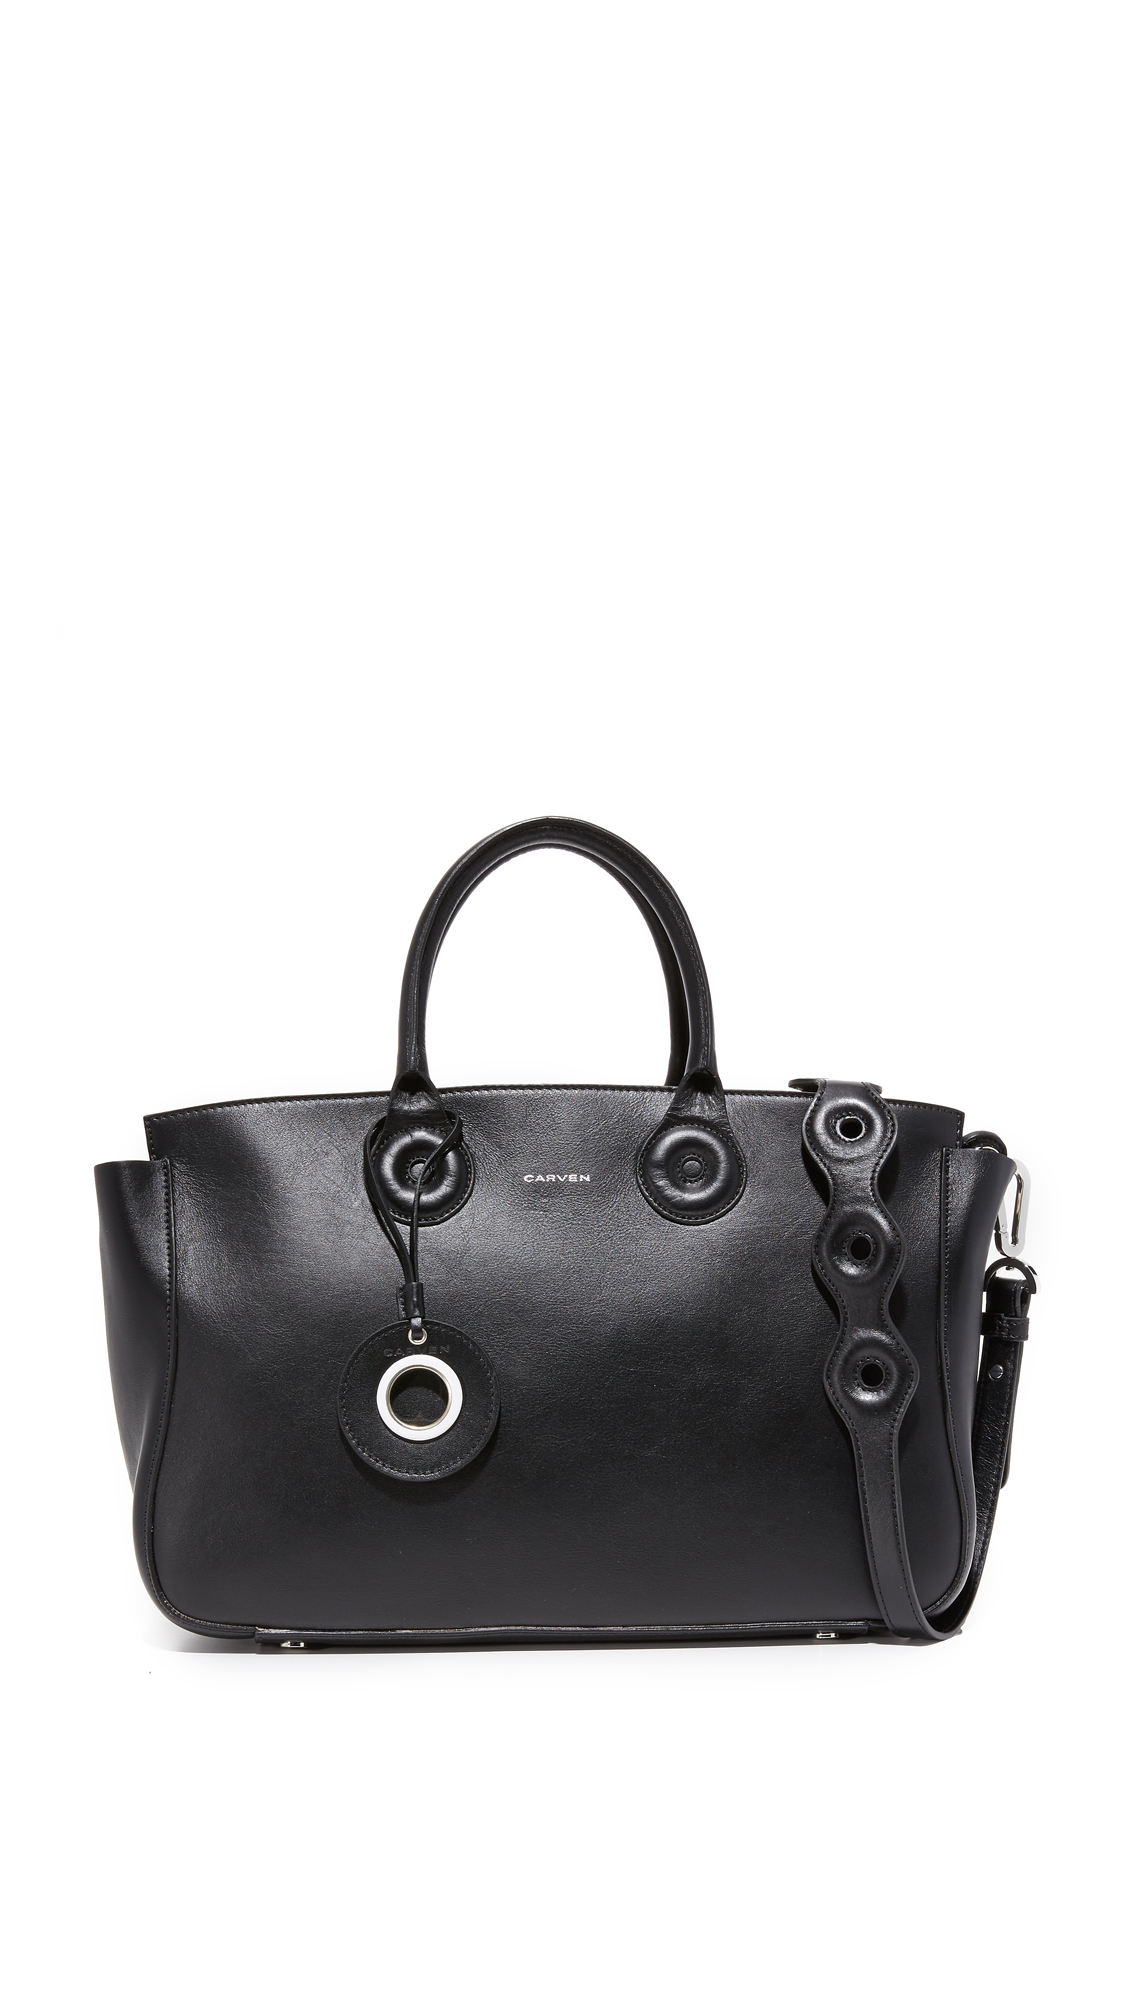 Carven Leather Tote - Black